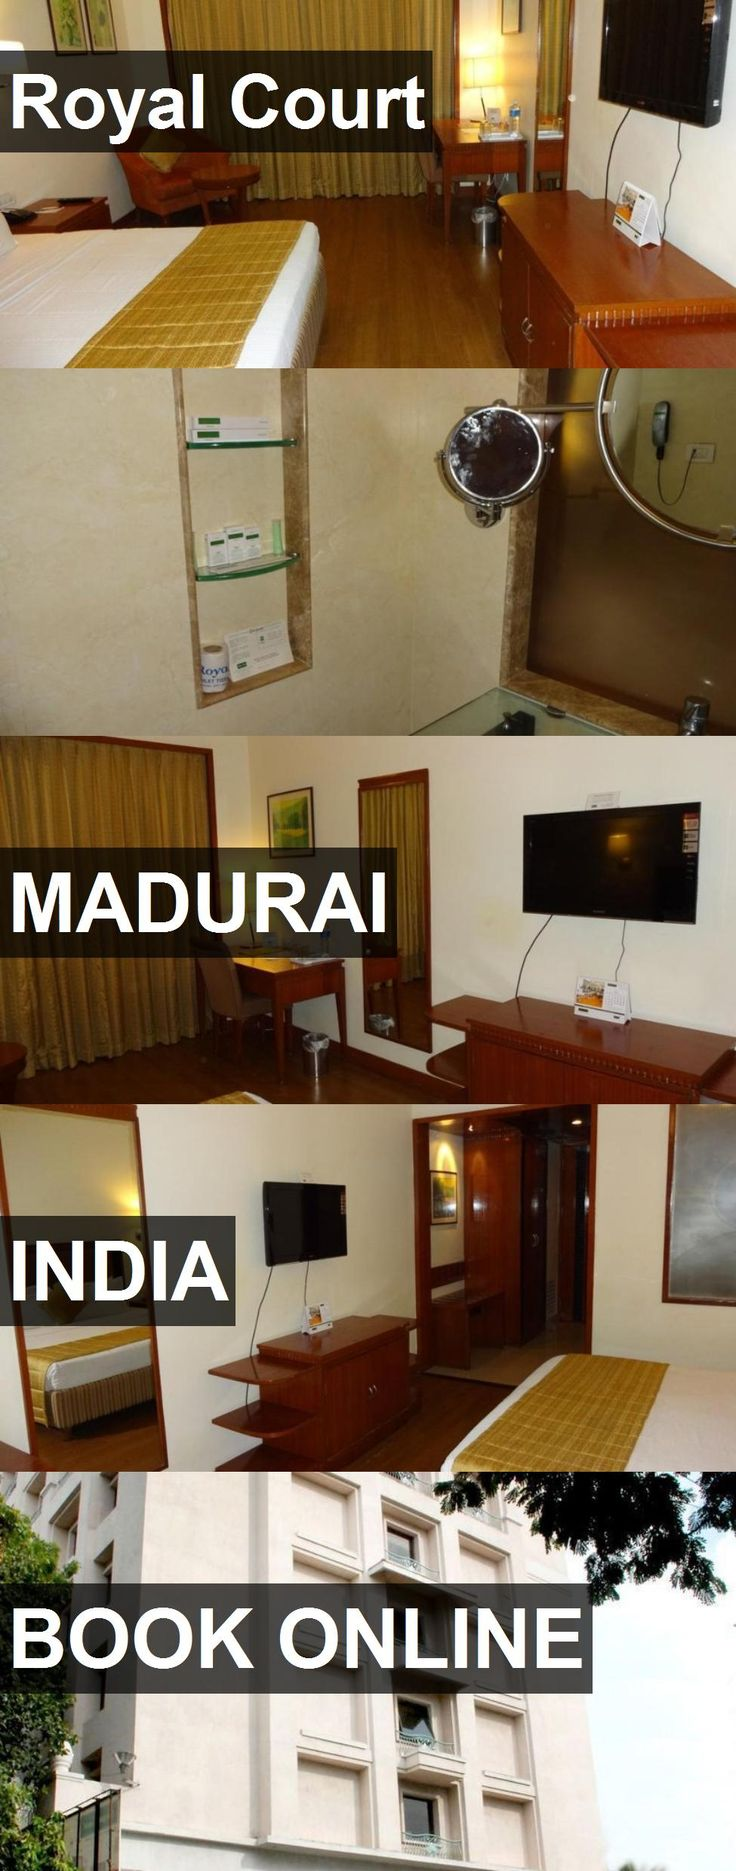 Hotel Royal Court in Madurai, India. For more information, photos, reviews and best prices please follow the link. #India #Madurai #travel #vacation #hotel